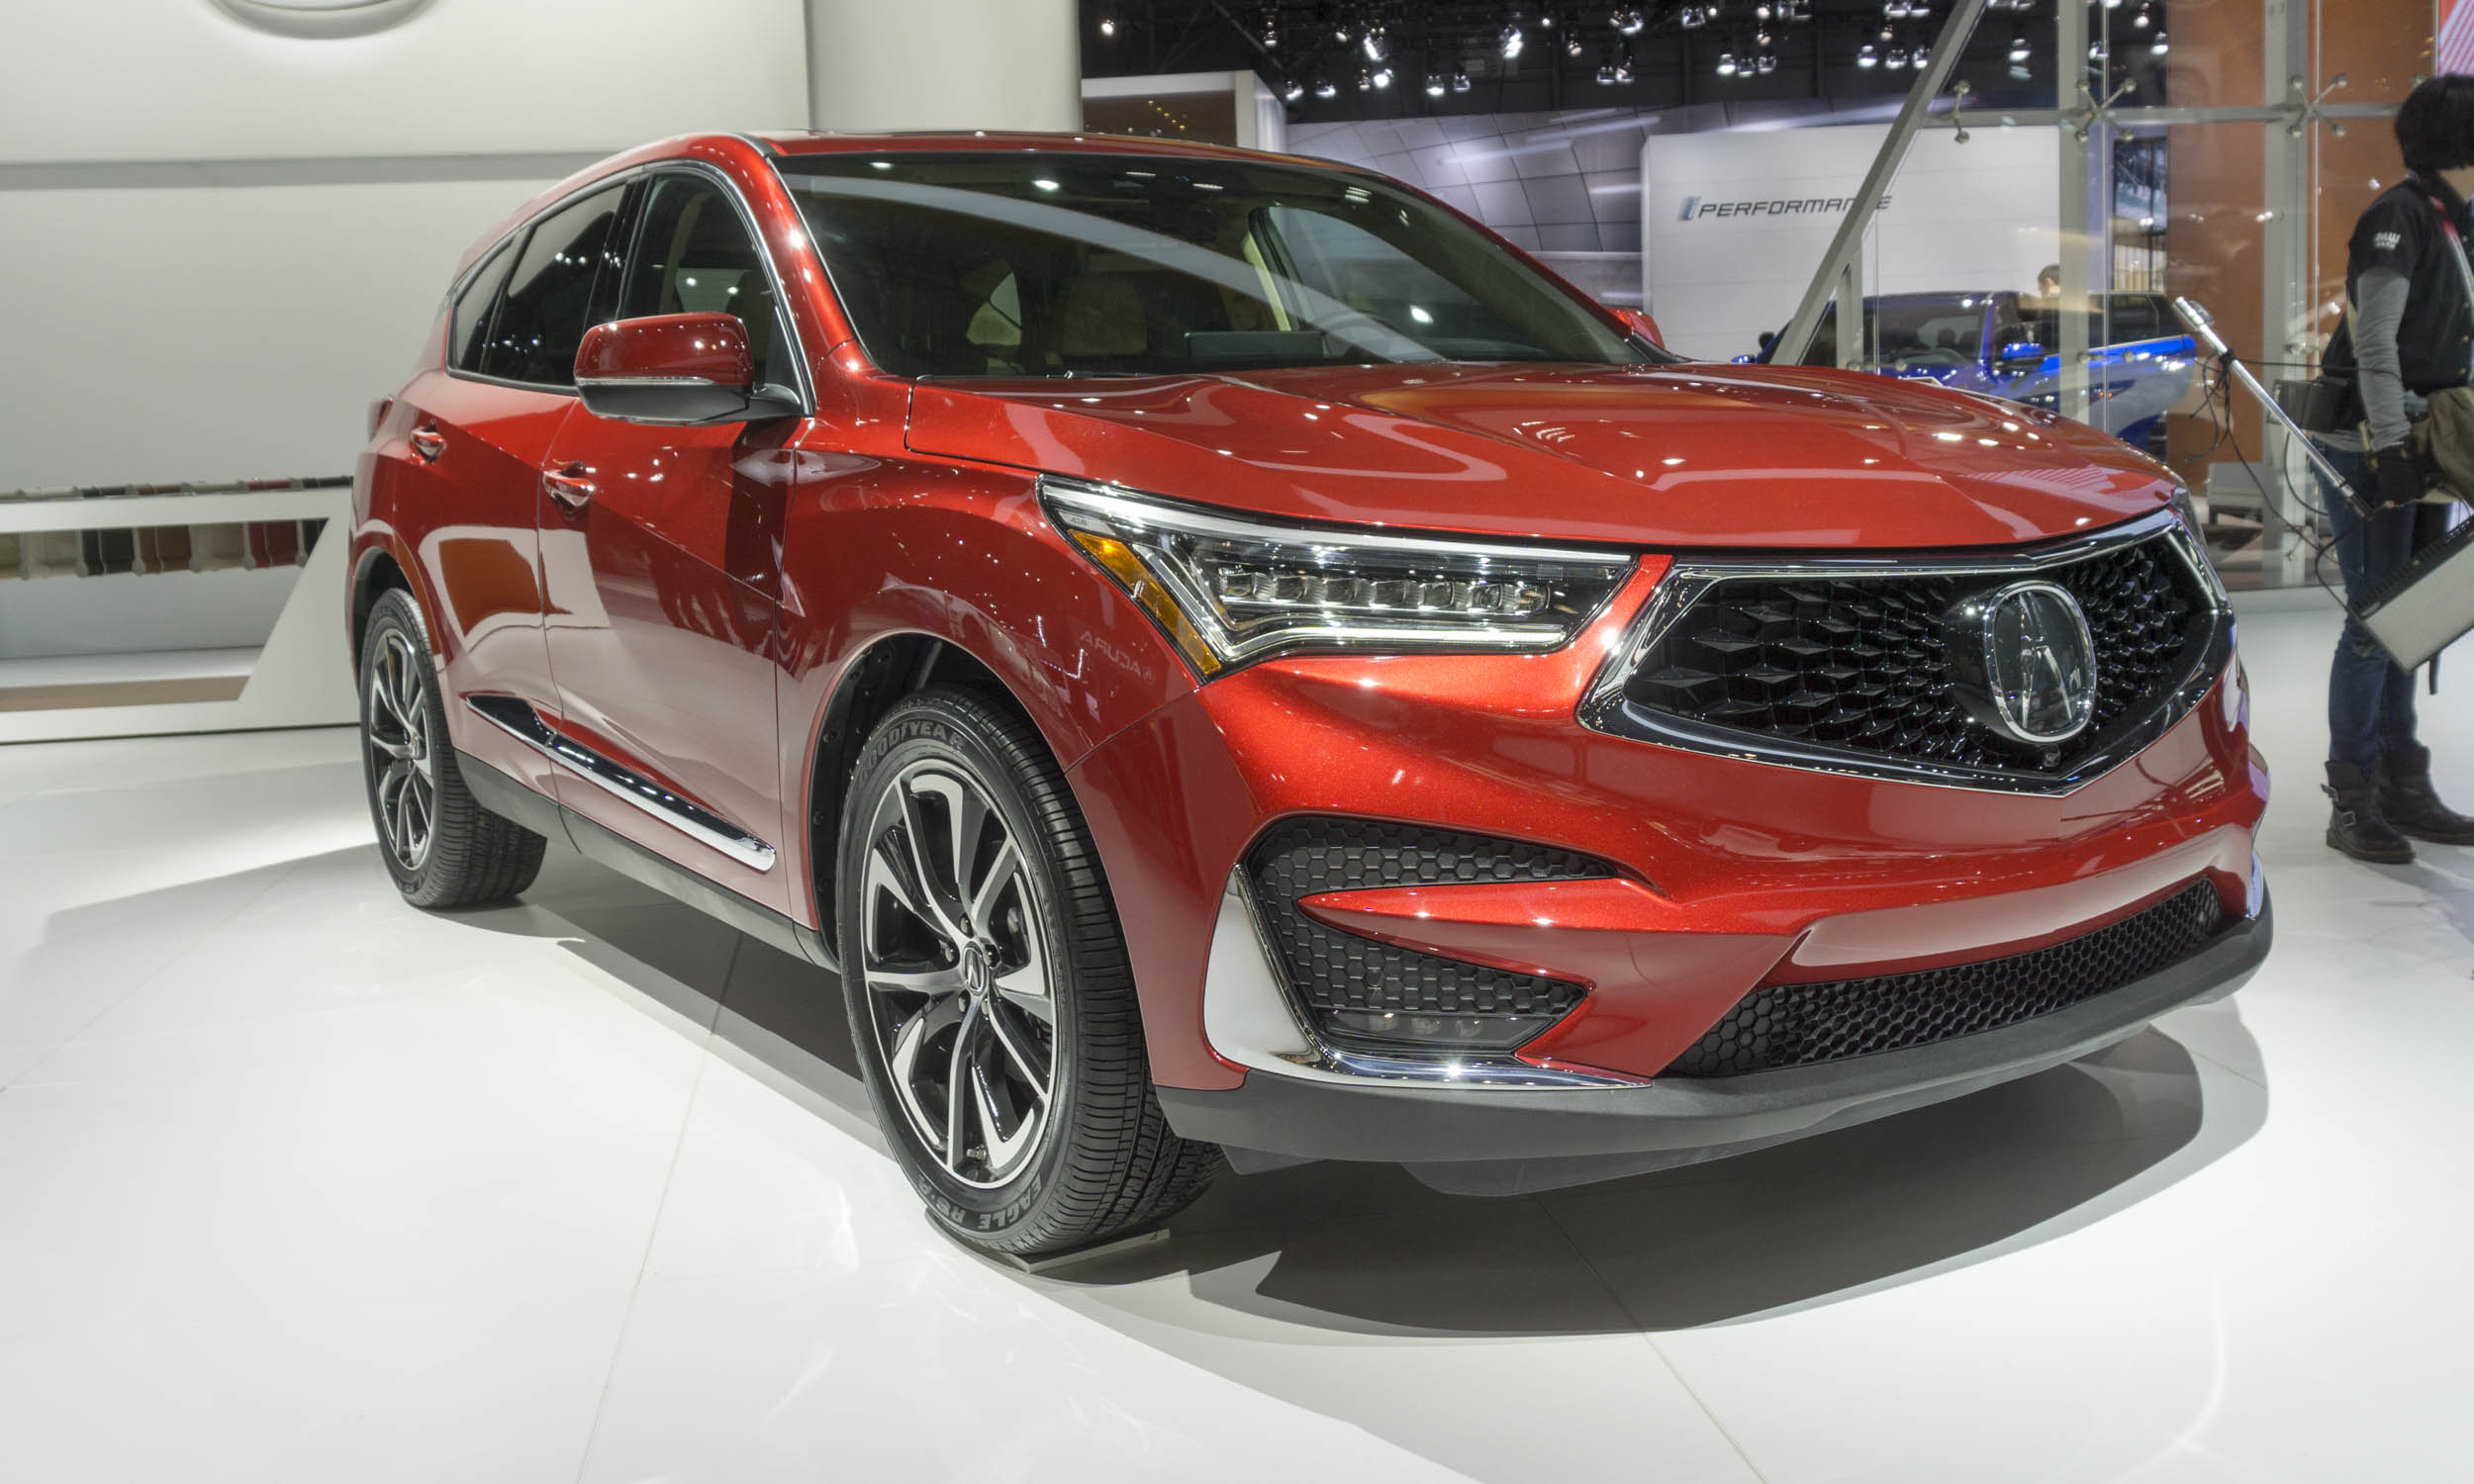 2018 new york auto show photo highlights autonxt for Sunny king honda oxford al